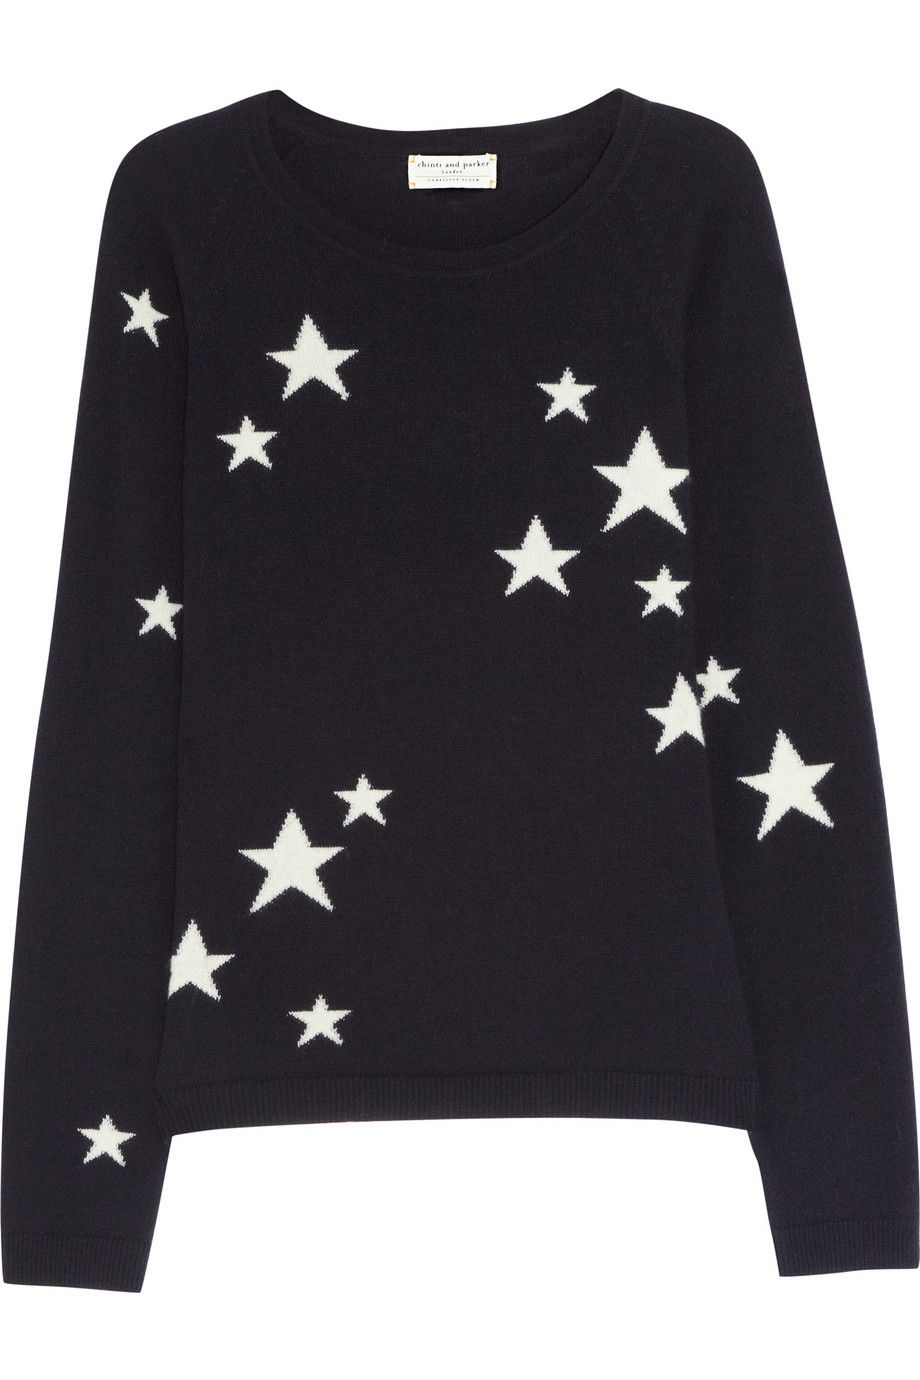 Chinti and Parker | Star-intarsia cashmere sweater | NET-A-PORTER ...